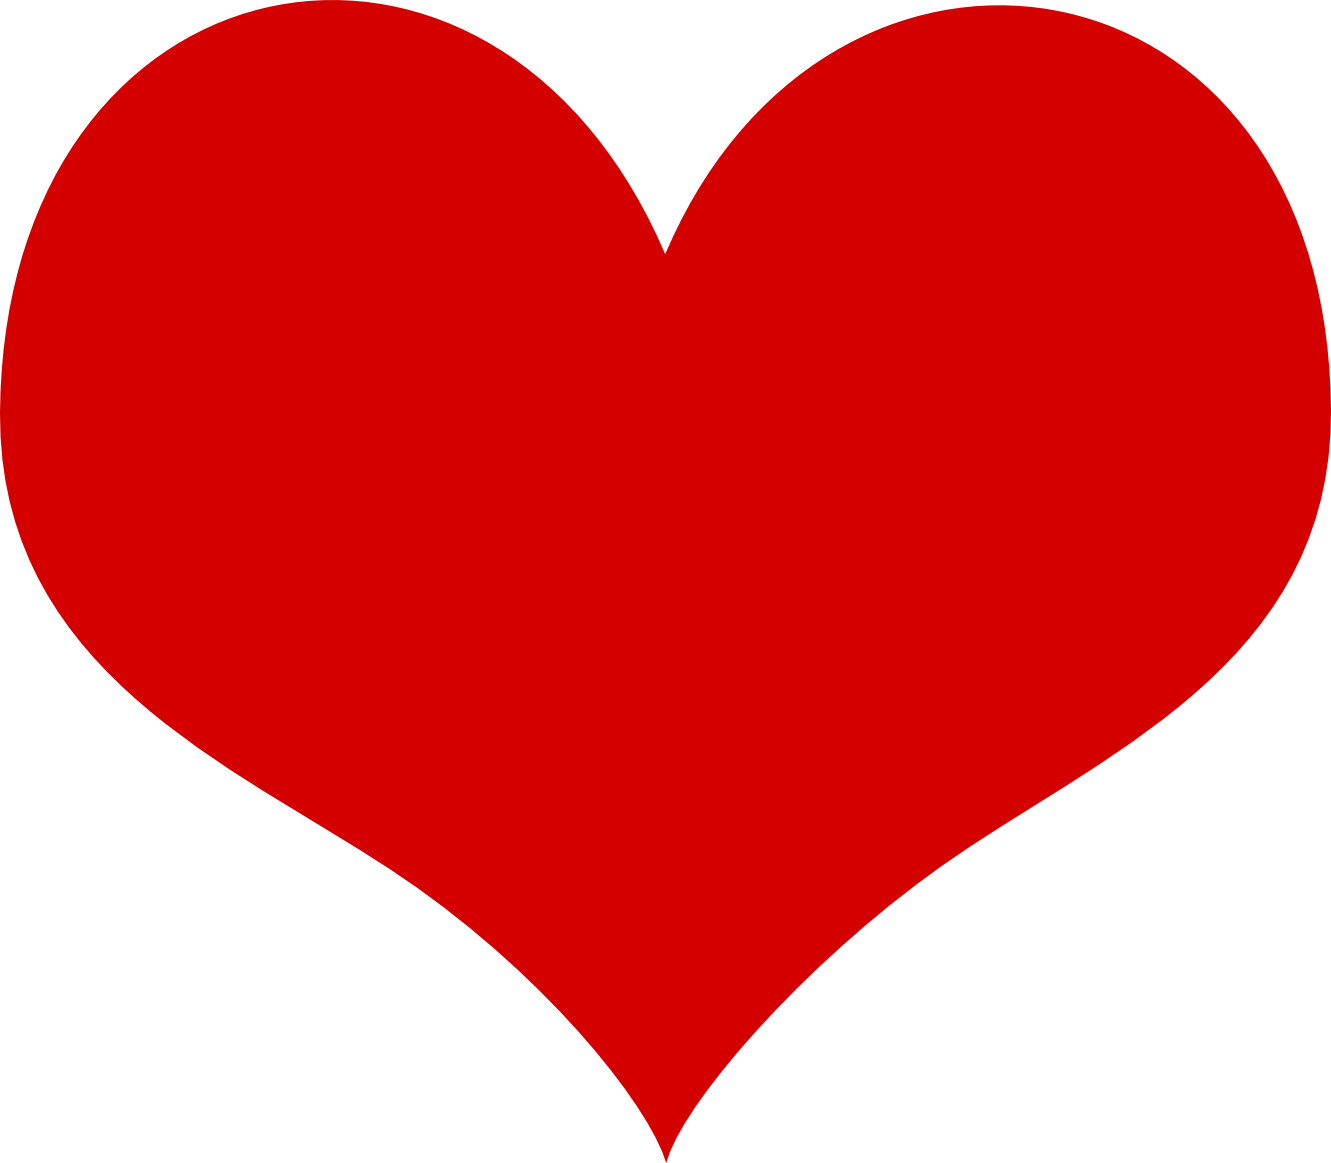 Red Heart Png Image, Free Download - Heart, Transparent background PNG HD thumbnail